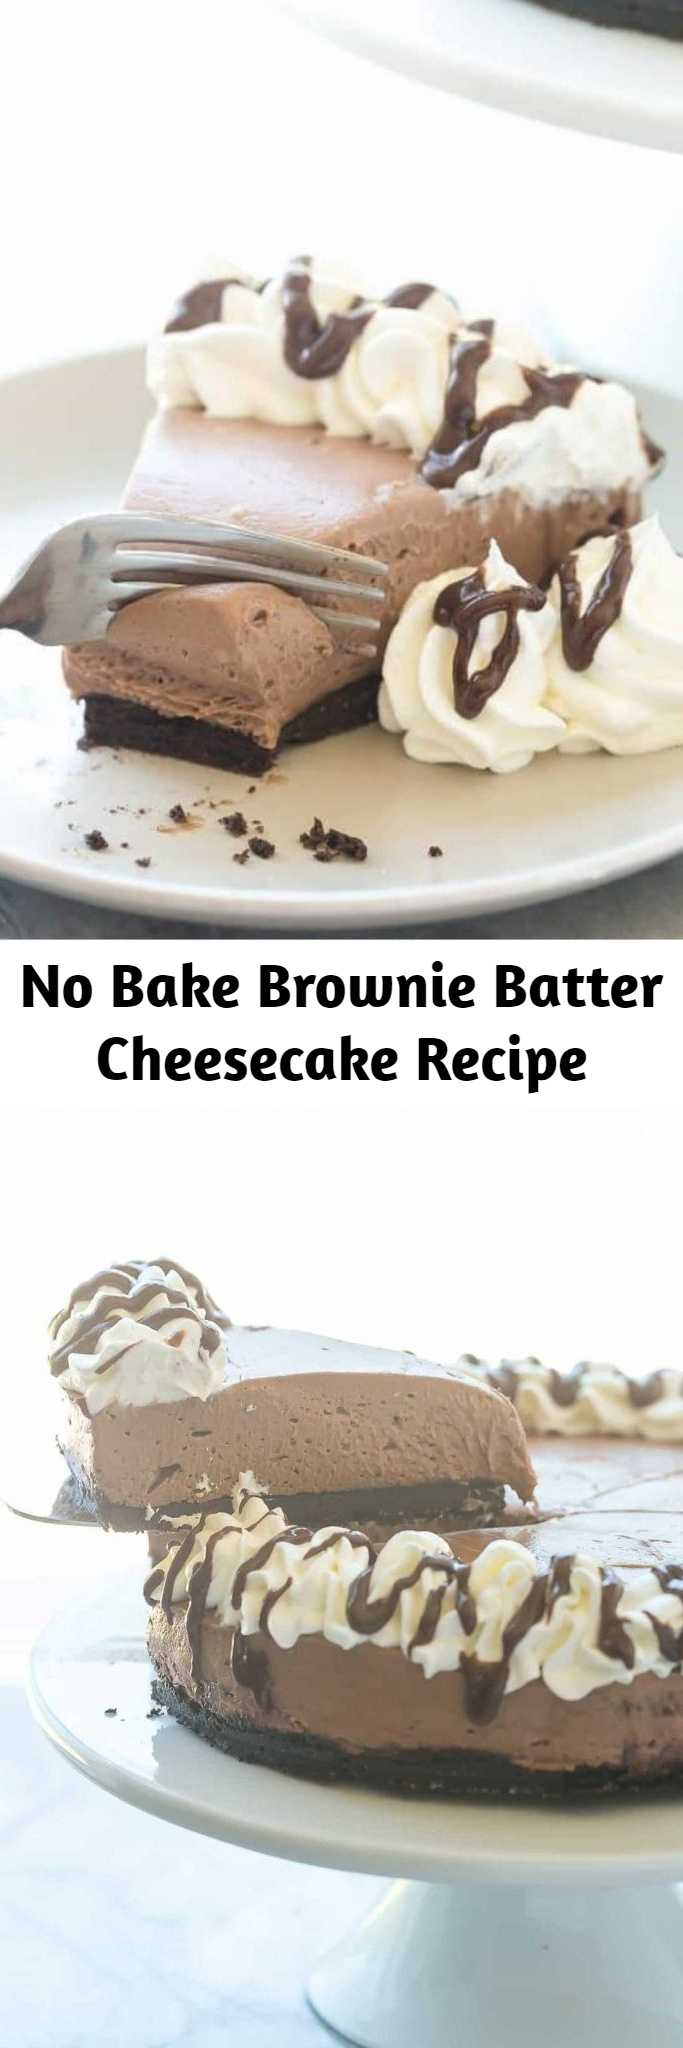 No Bake Brownie Batter Cheesecake Recipe - This No Bake Brownie Batter Cheesecake is the cheesecake for chocolate lovers! It's rich and fudgy with no oven required!